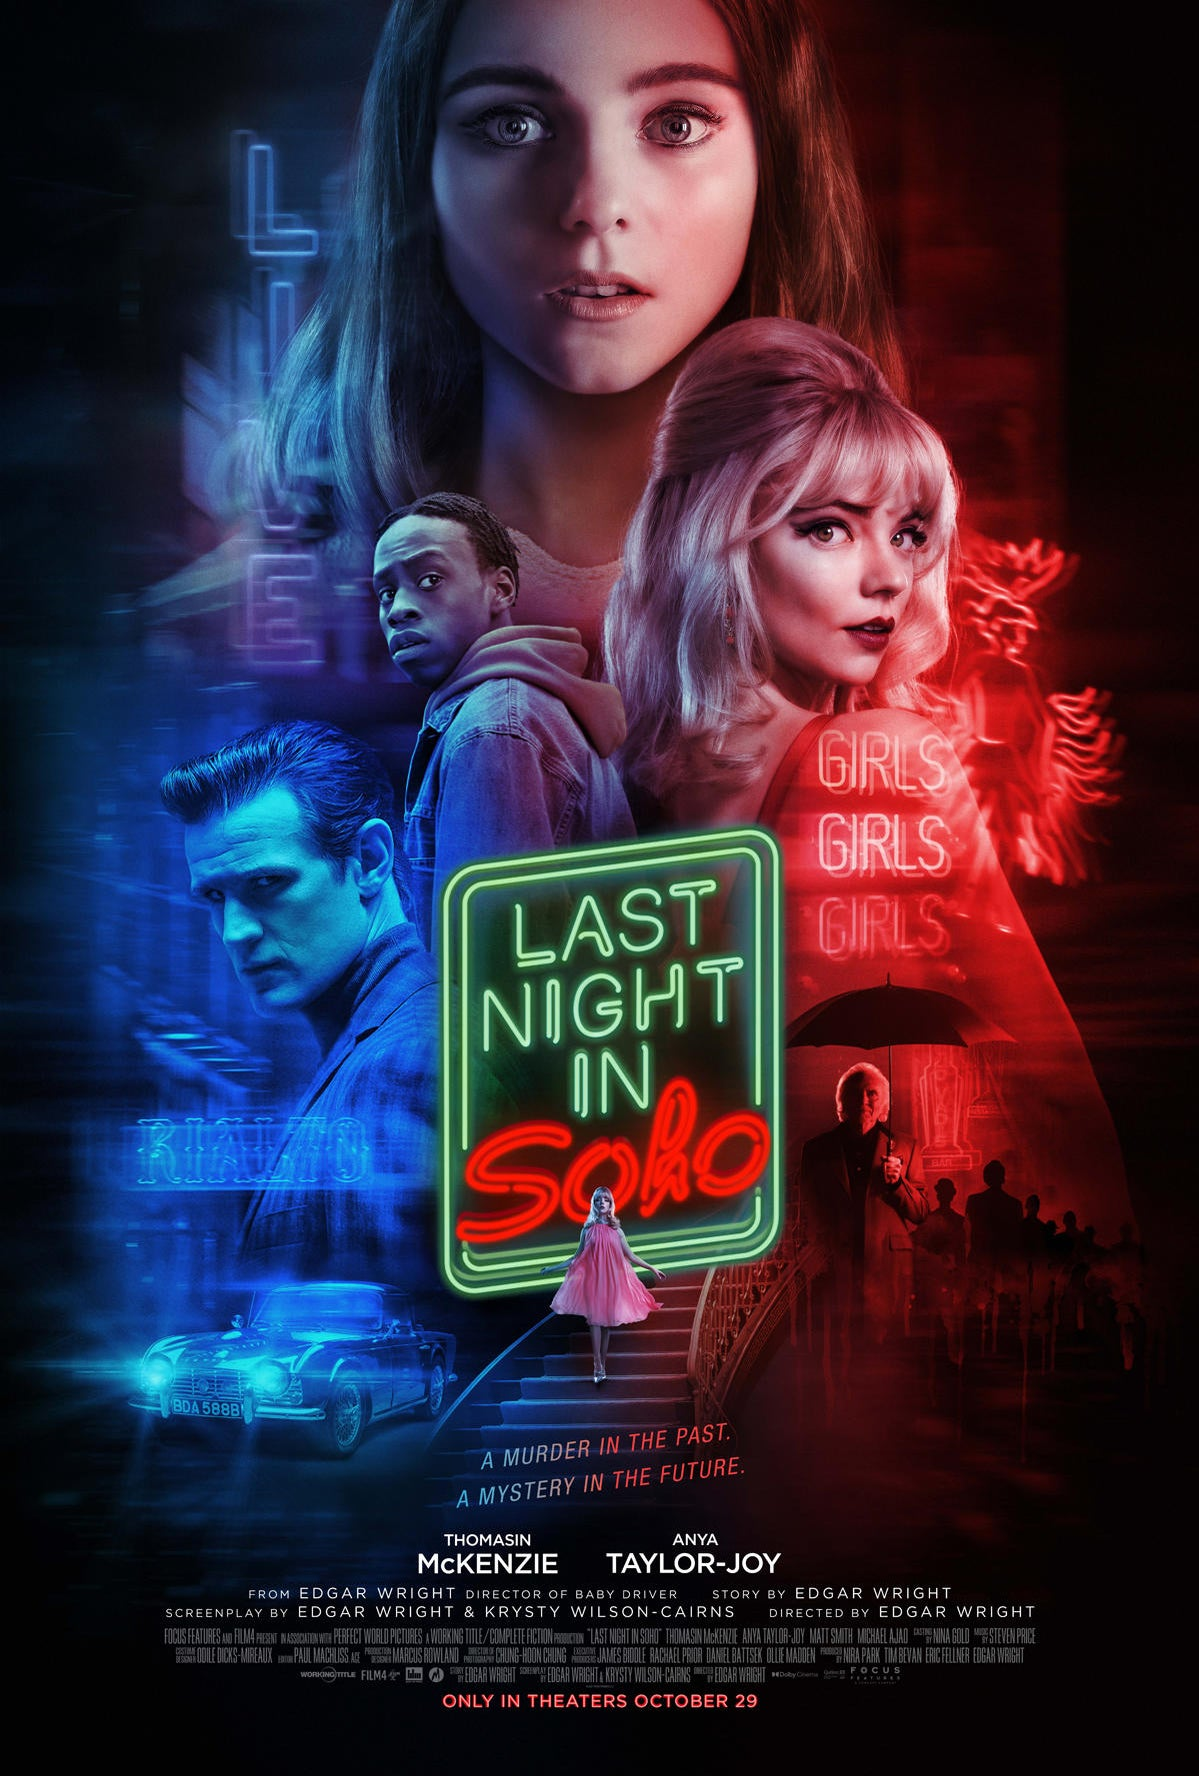 Last Night in Soho Gets New Poster